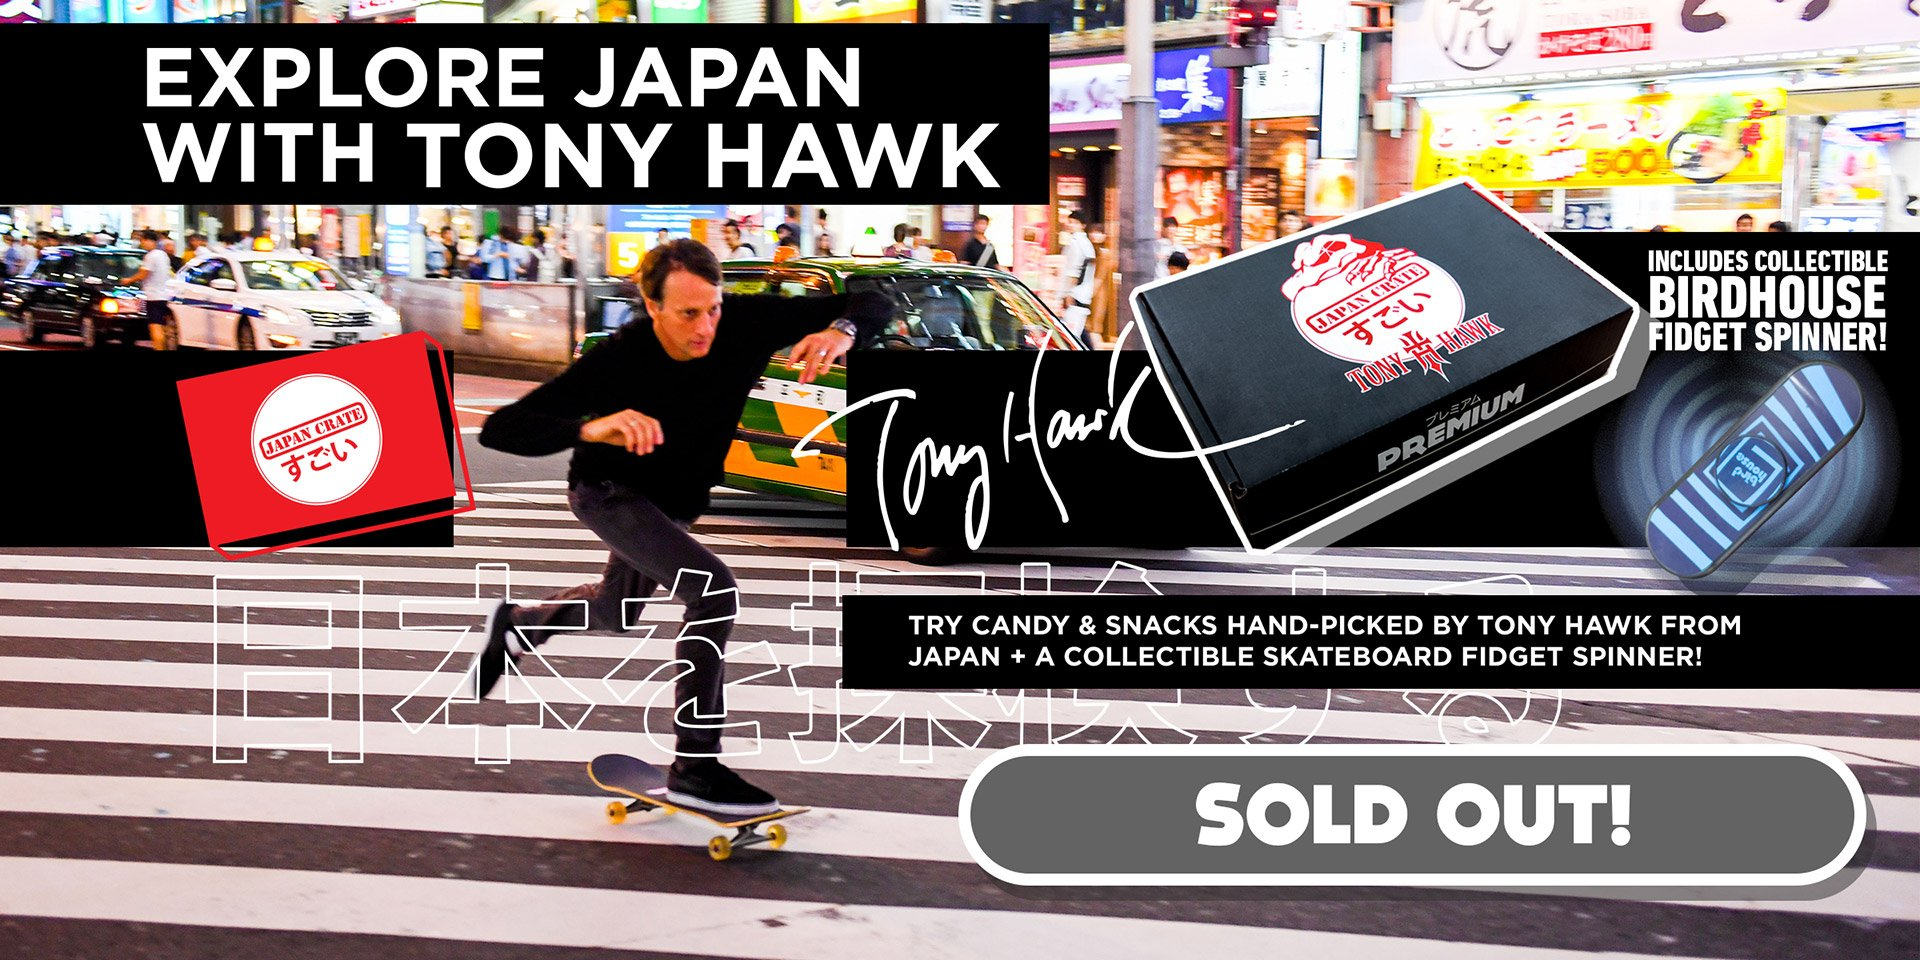 Japan Crate Japanese Candy Delivered Monthly Birdhouse Tony Hawk Pro Model We Flew Skater Snack Fanatic To Tokyo Where He Handpicked Candies For Septembers First Ever Collaboration